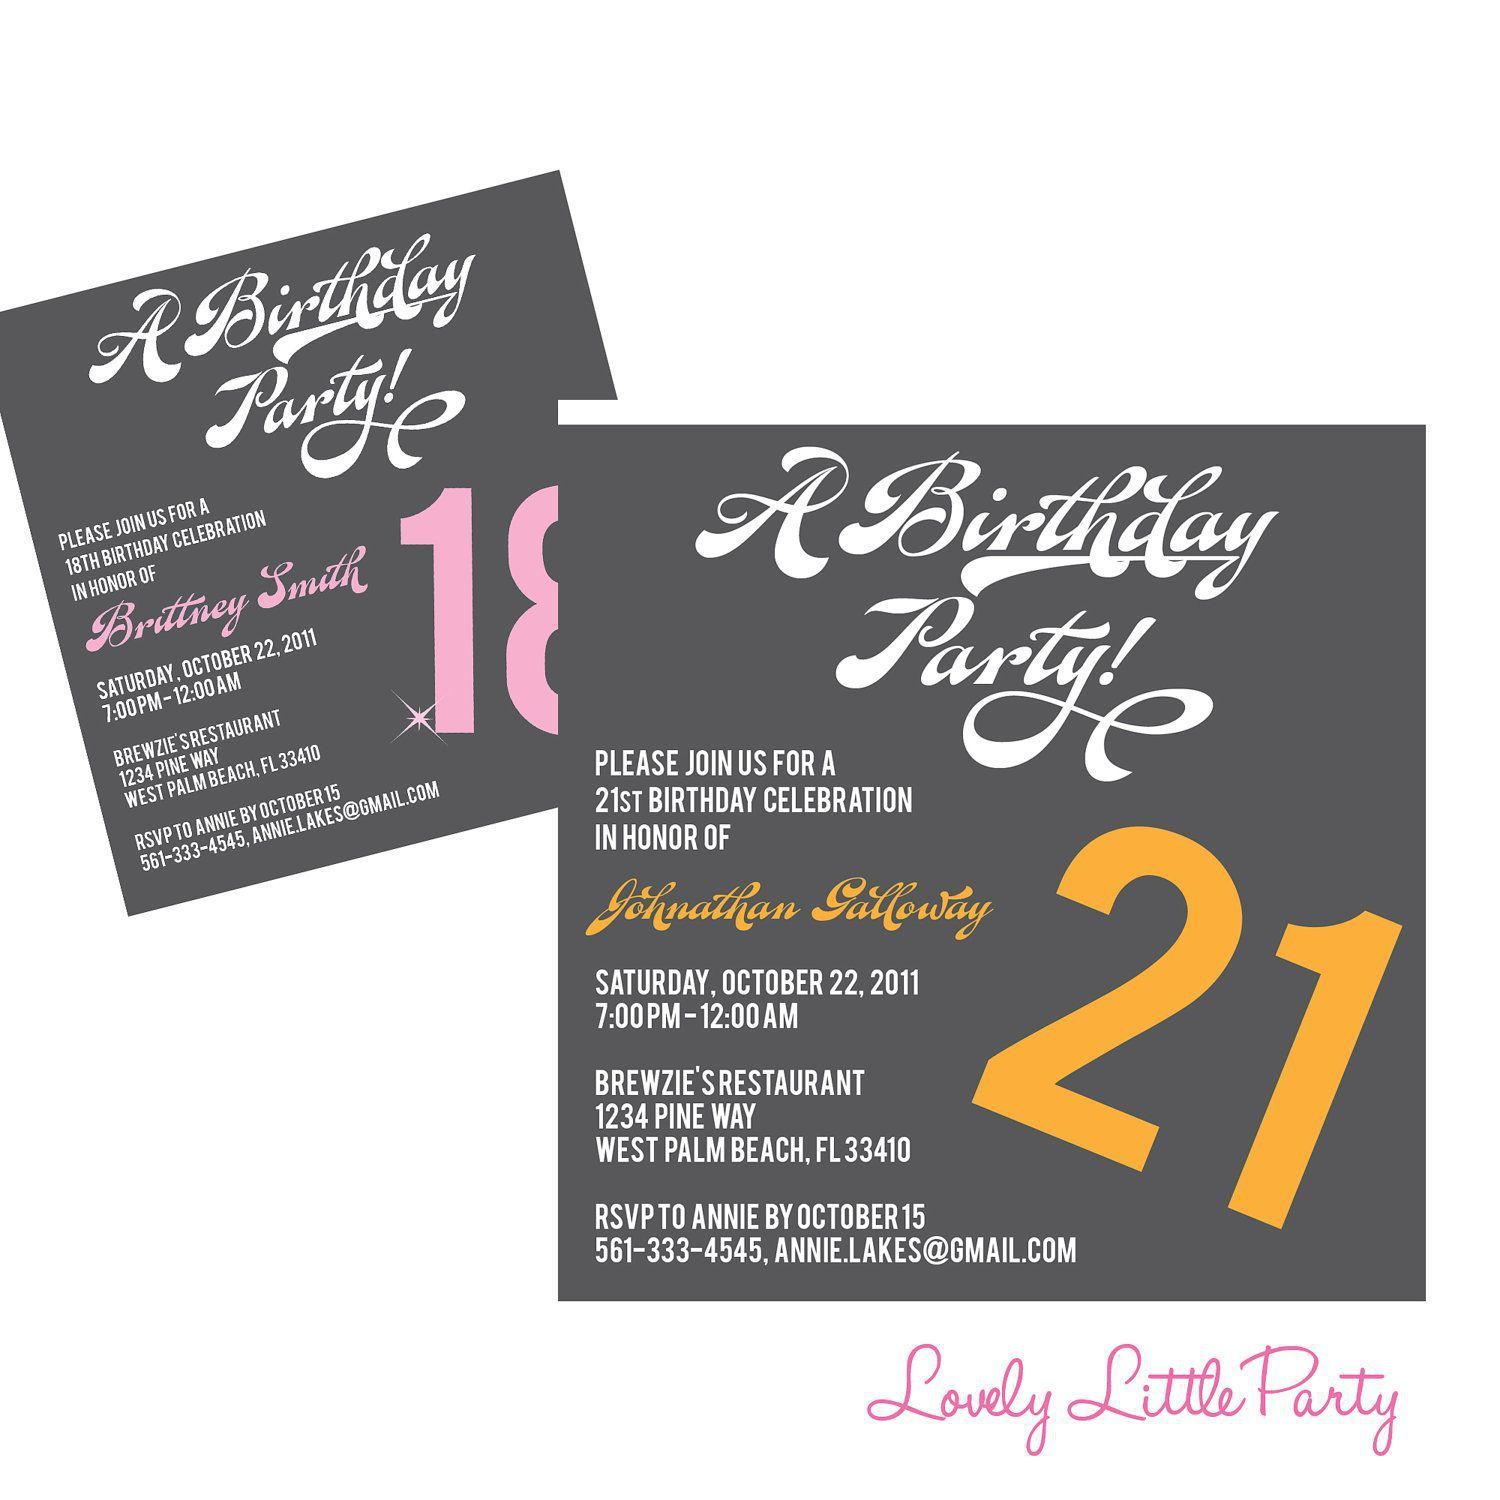 Birthday Invitation Online Invitations